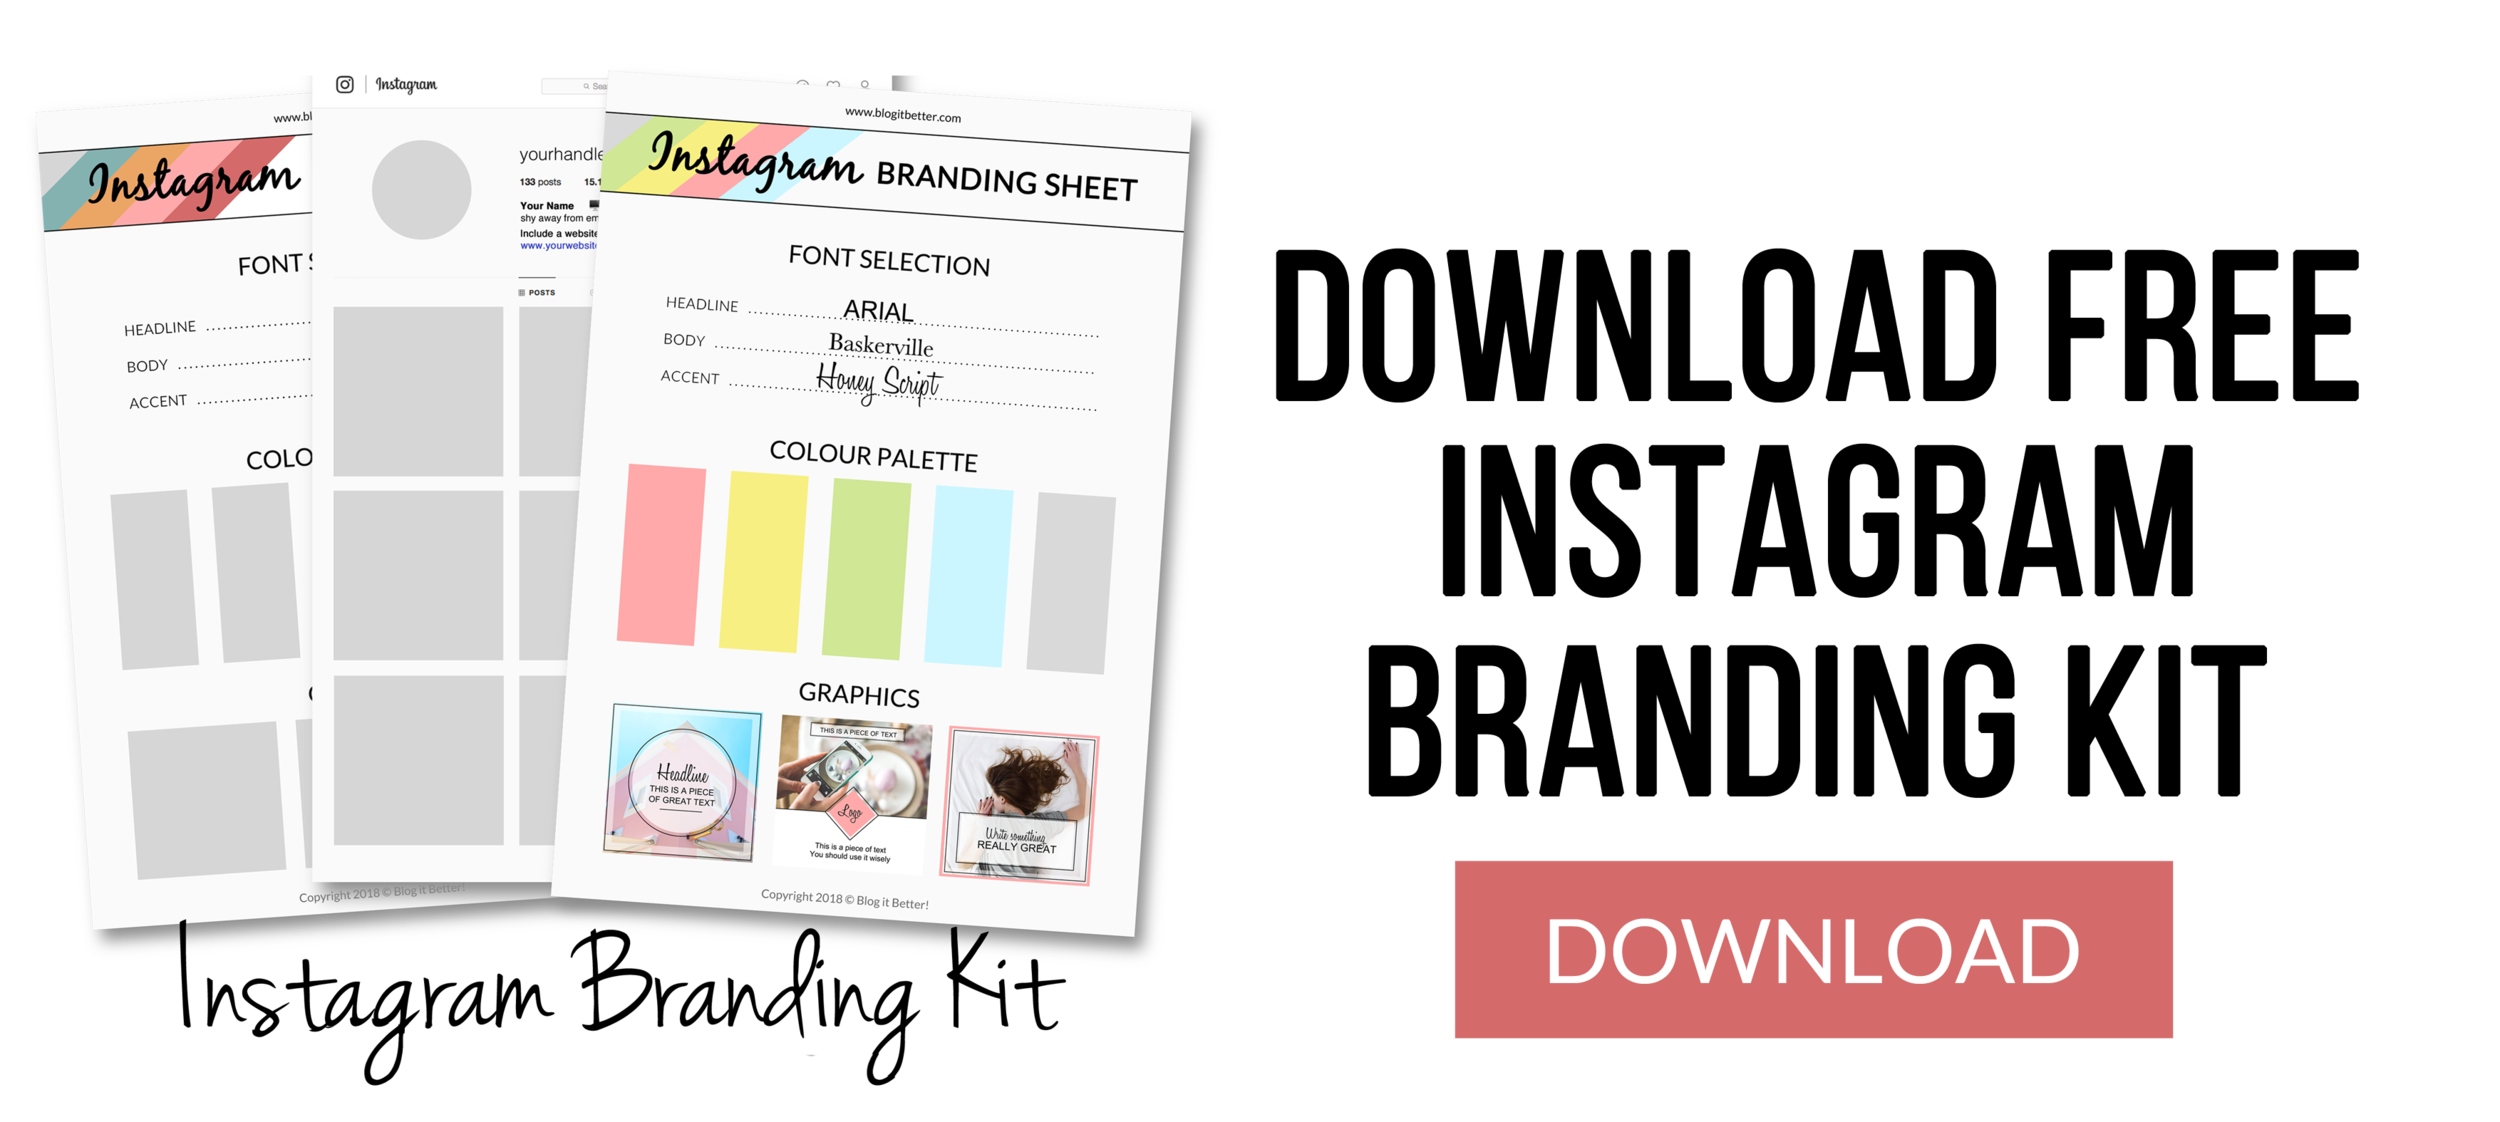 Download free Instagram Branding Kit - Blog it Better Blog Coaching and Social Media Help